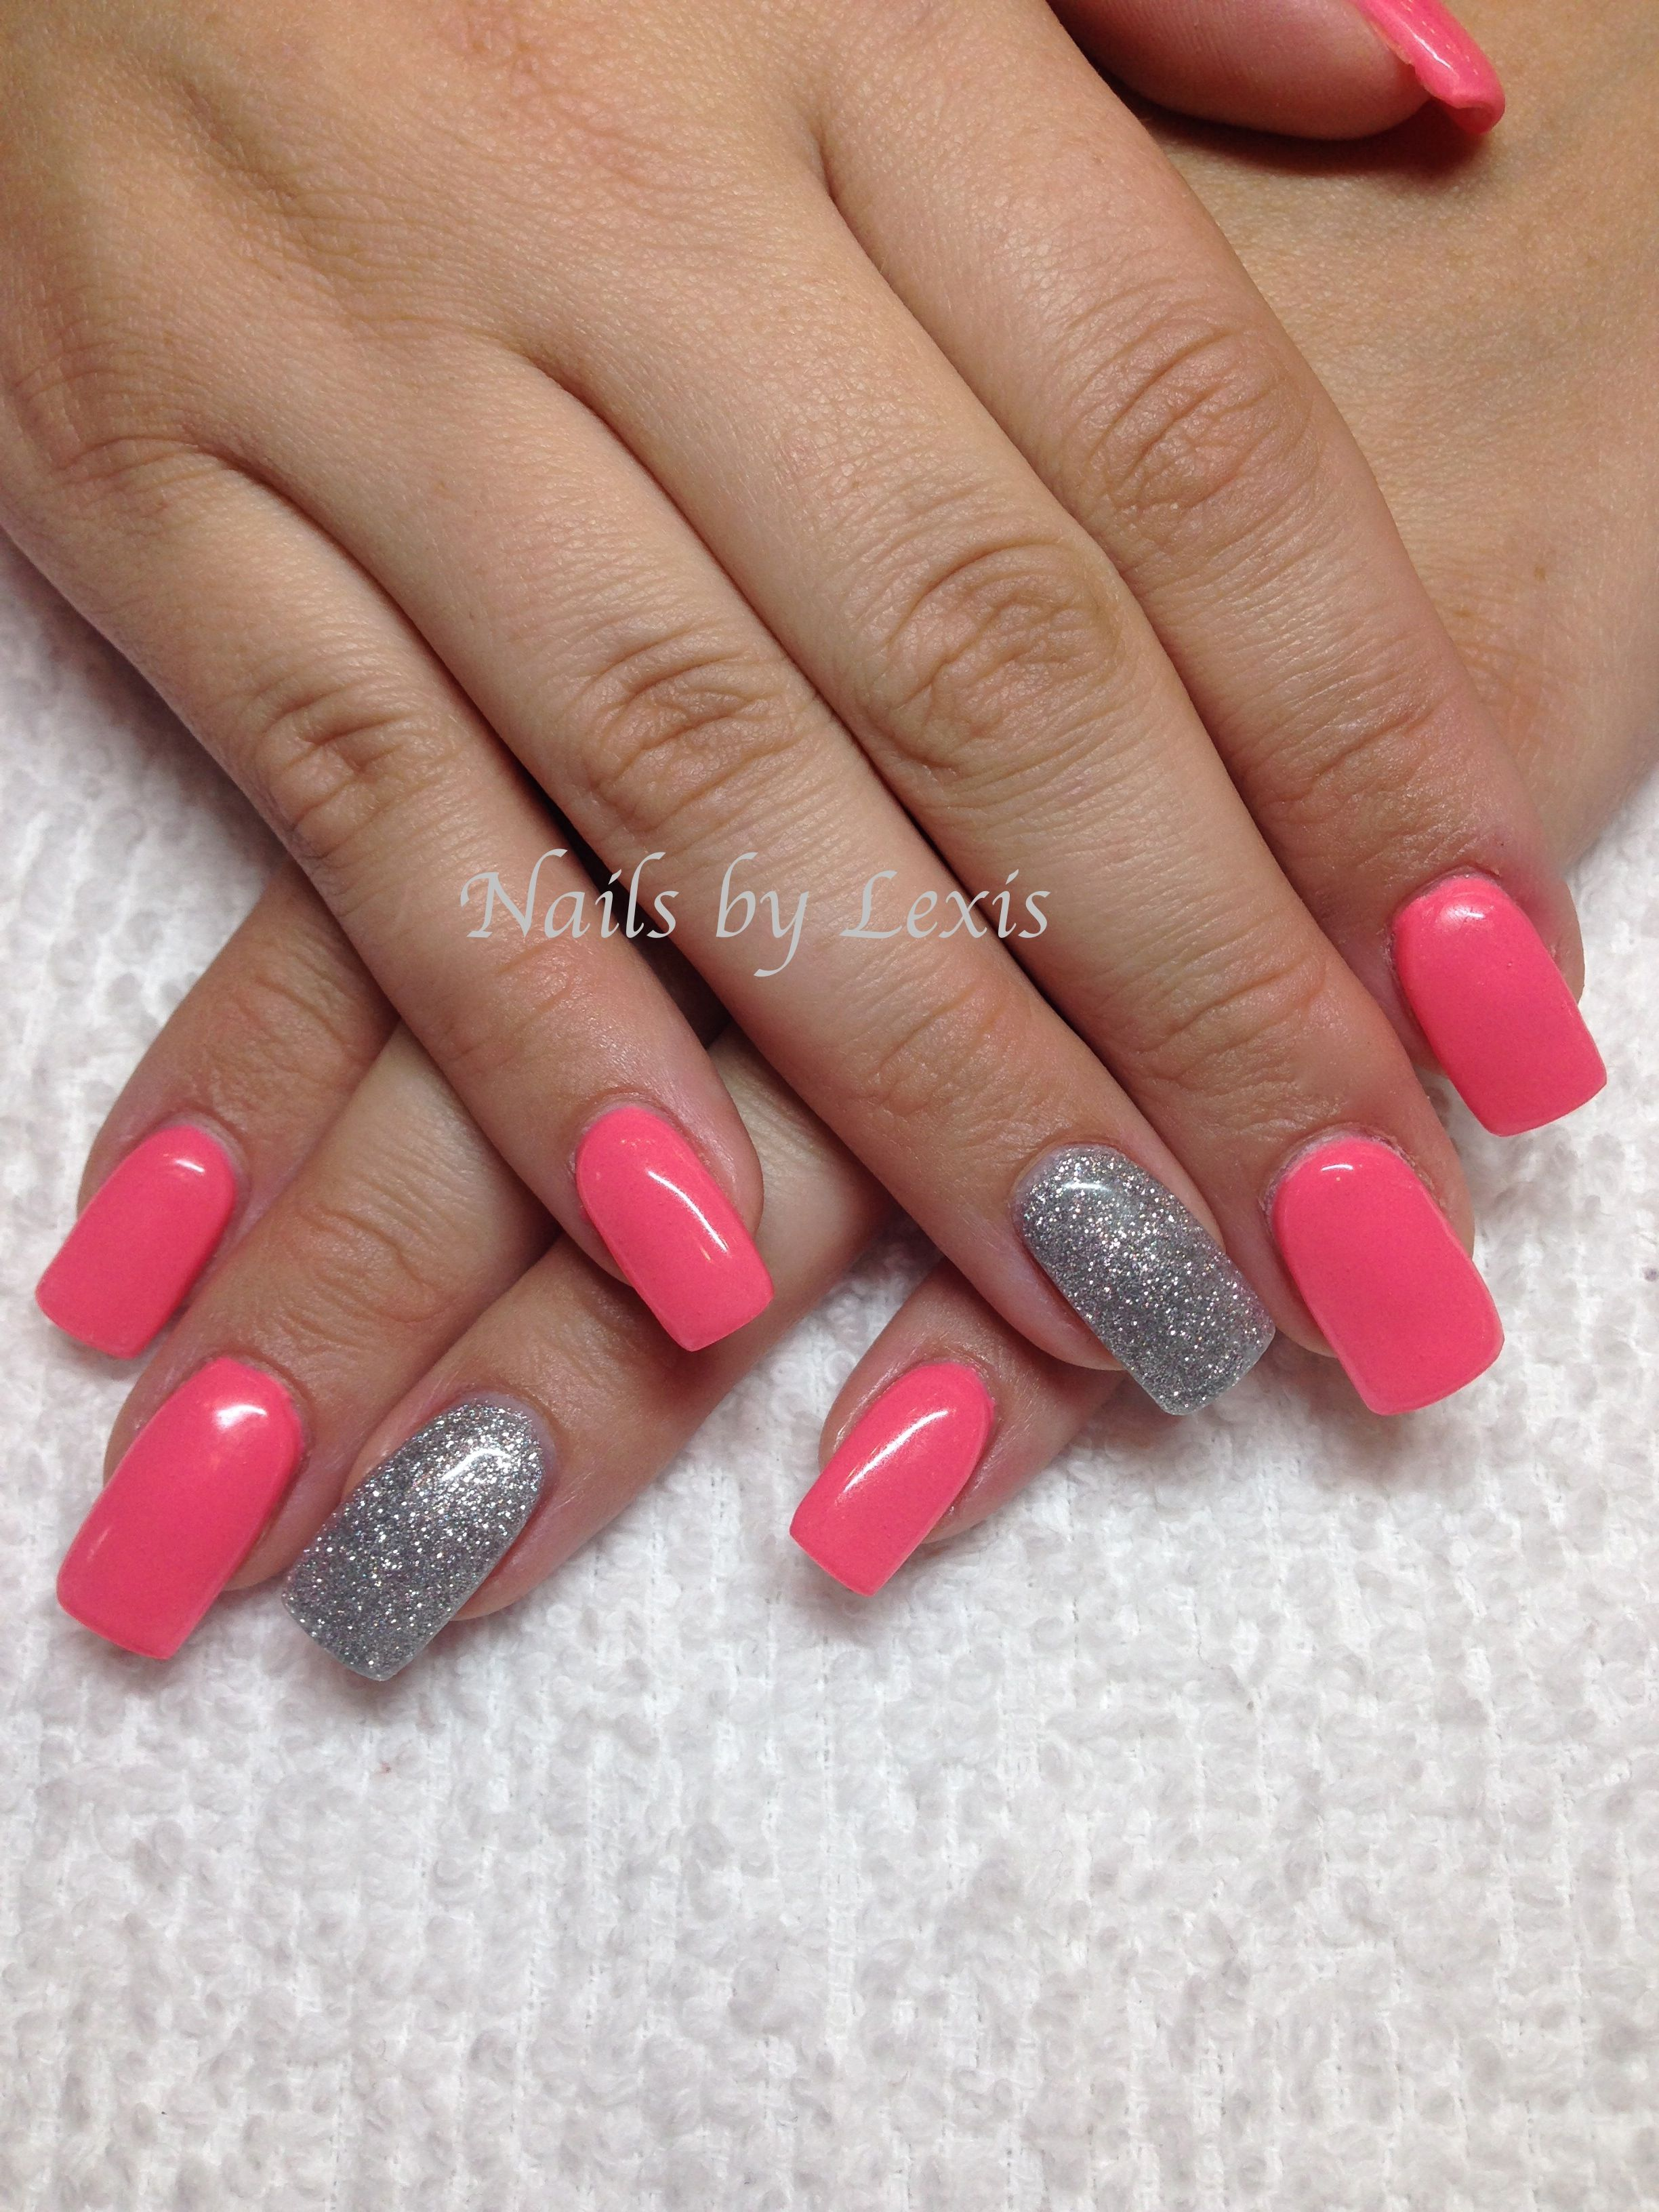 Fuzion Gel Nails by Lexis! | Nails | Pinterest